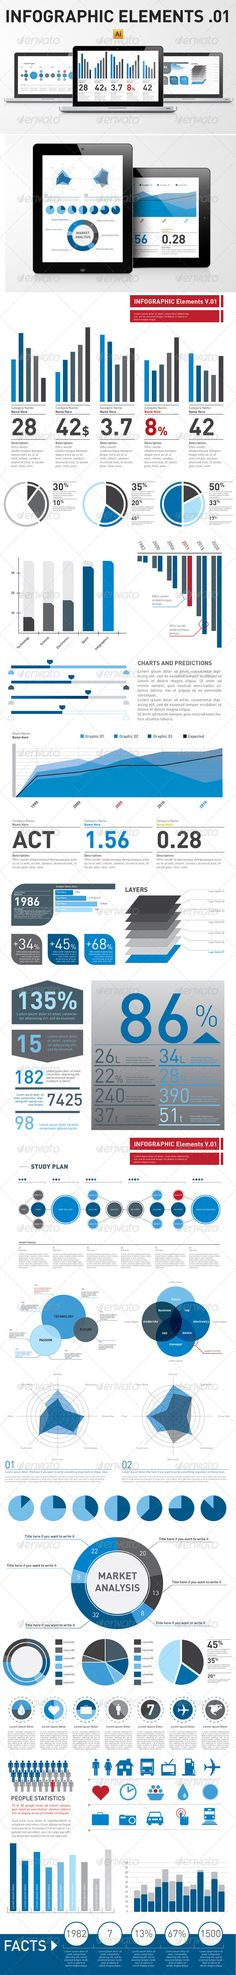 Infographic Elements Template from Graphic River.